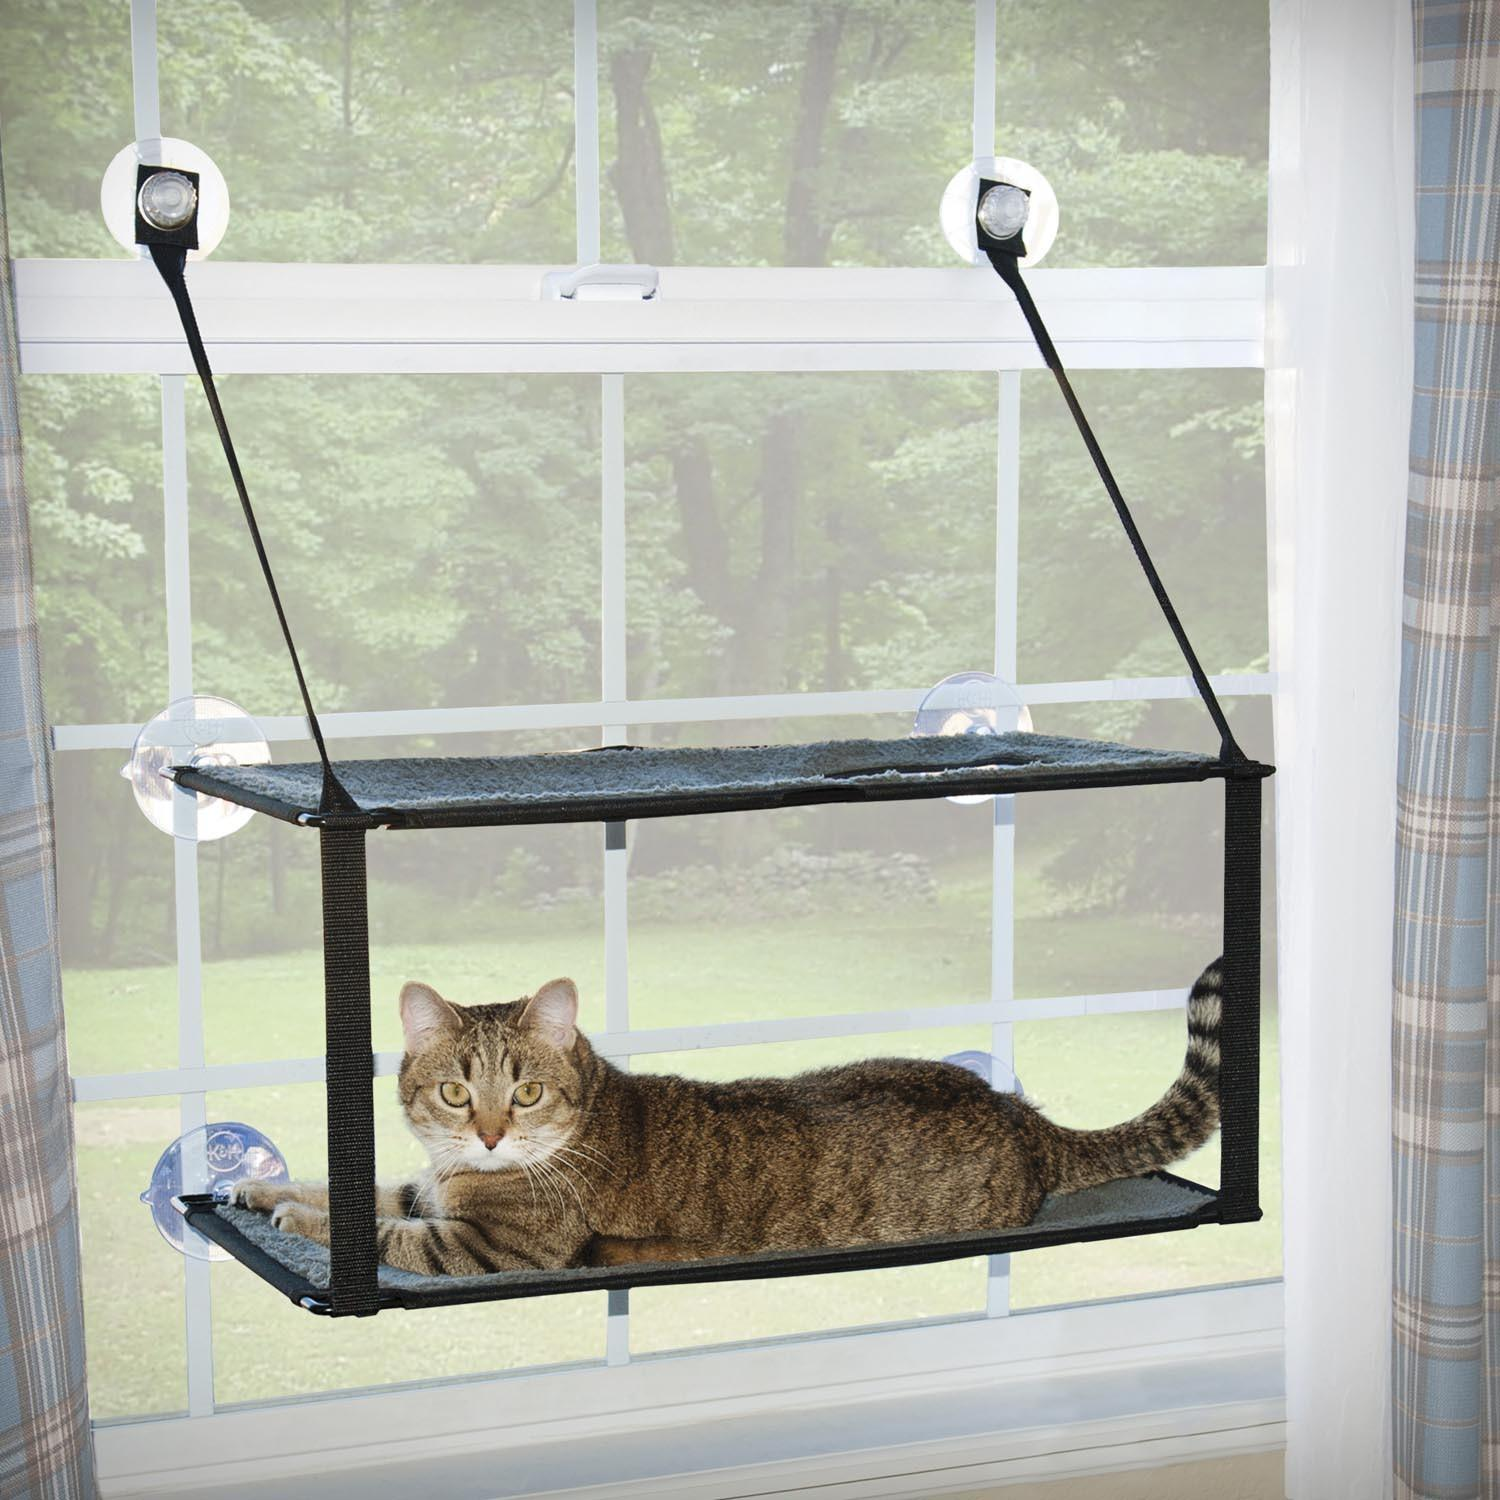 Attractive Ku0026H EZ Mount Window Bed Kitty Sill Green · Ku0026H EZ Mount Window Pod Kitty  Sill Tan · Ku0026H EZ Mount Window Kitty Sill · Ku0026H EZ Mount Window Double  Stack Kitty ...